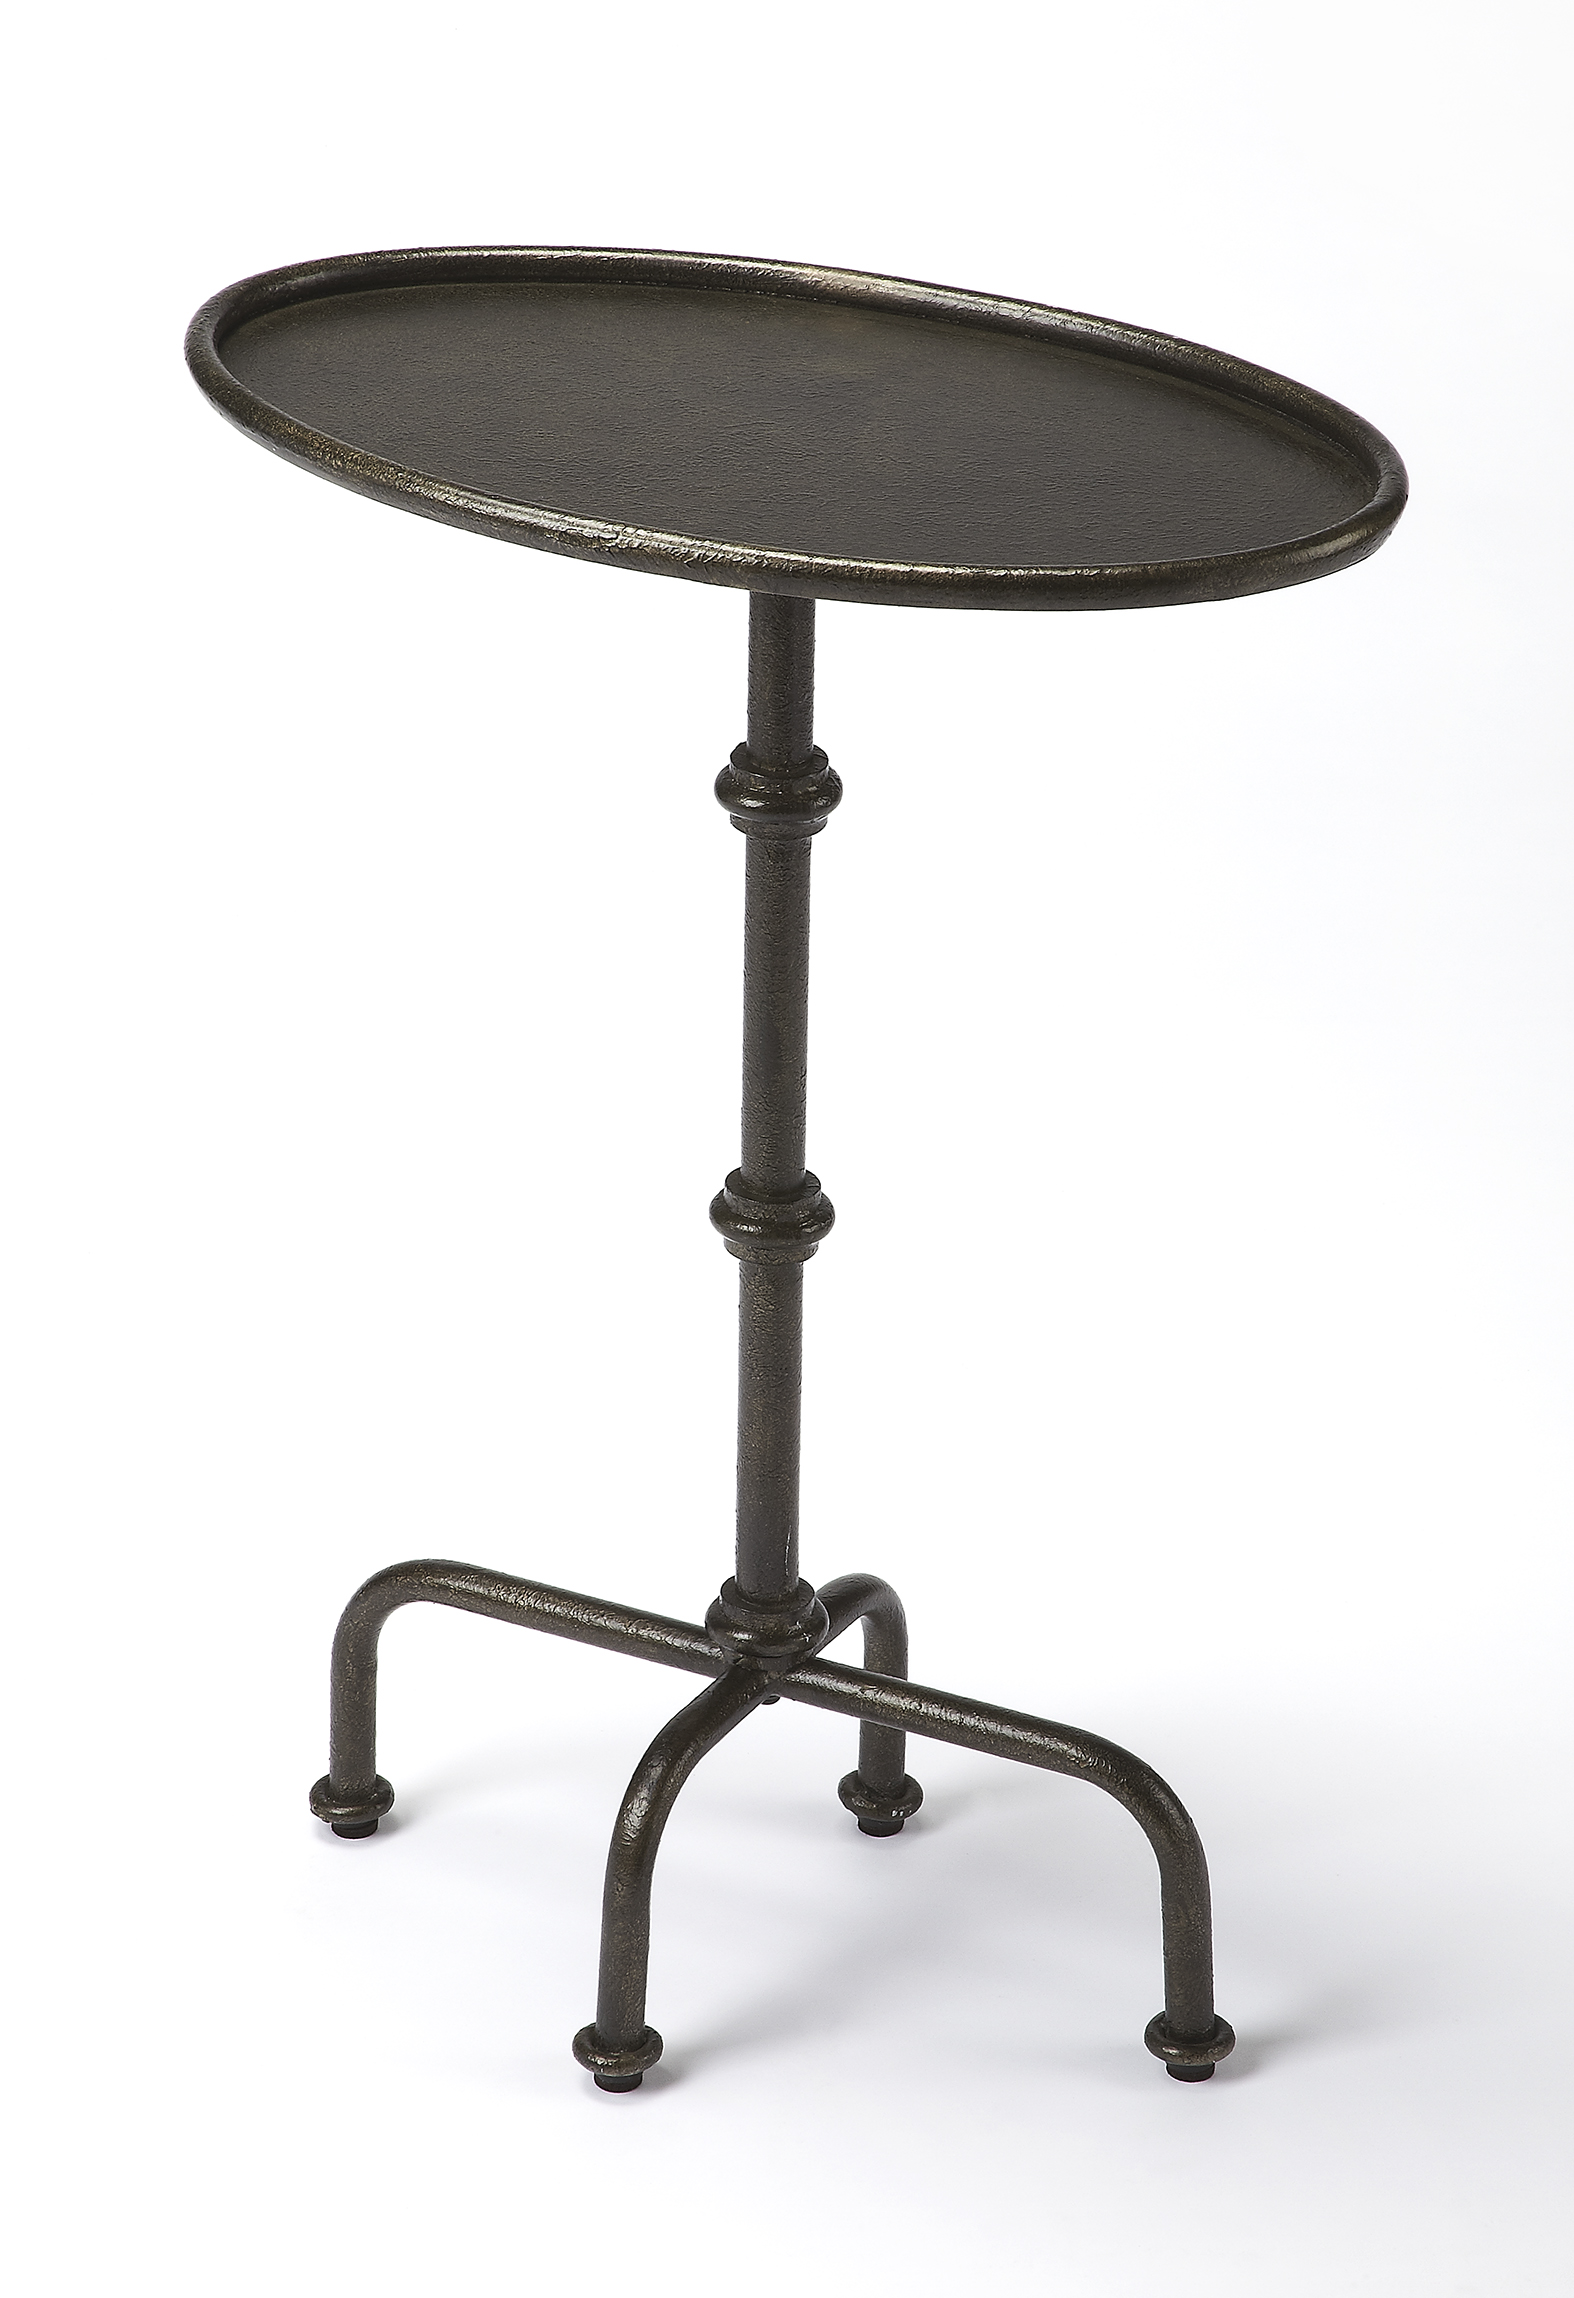 Kira Pedestal Table